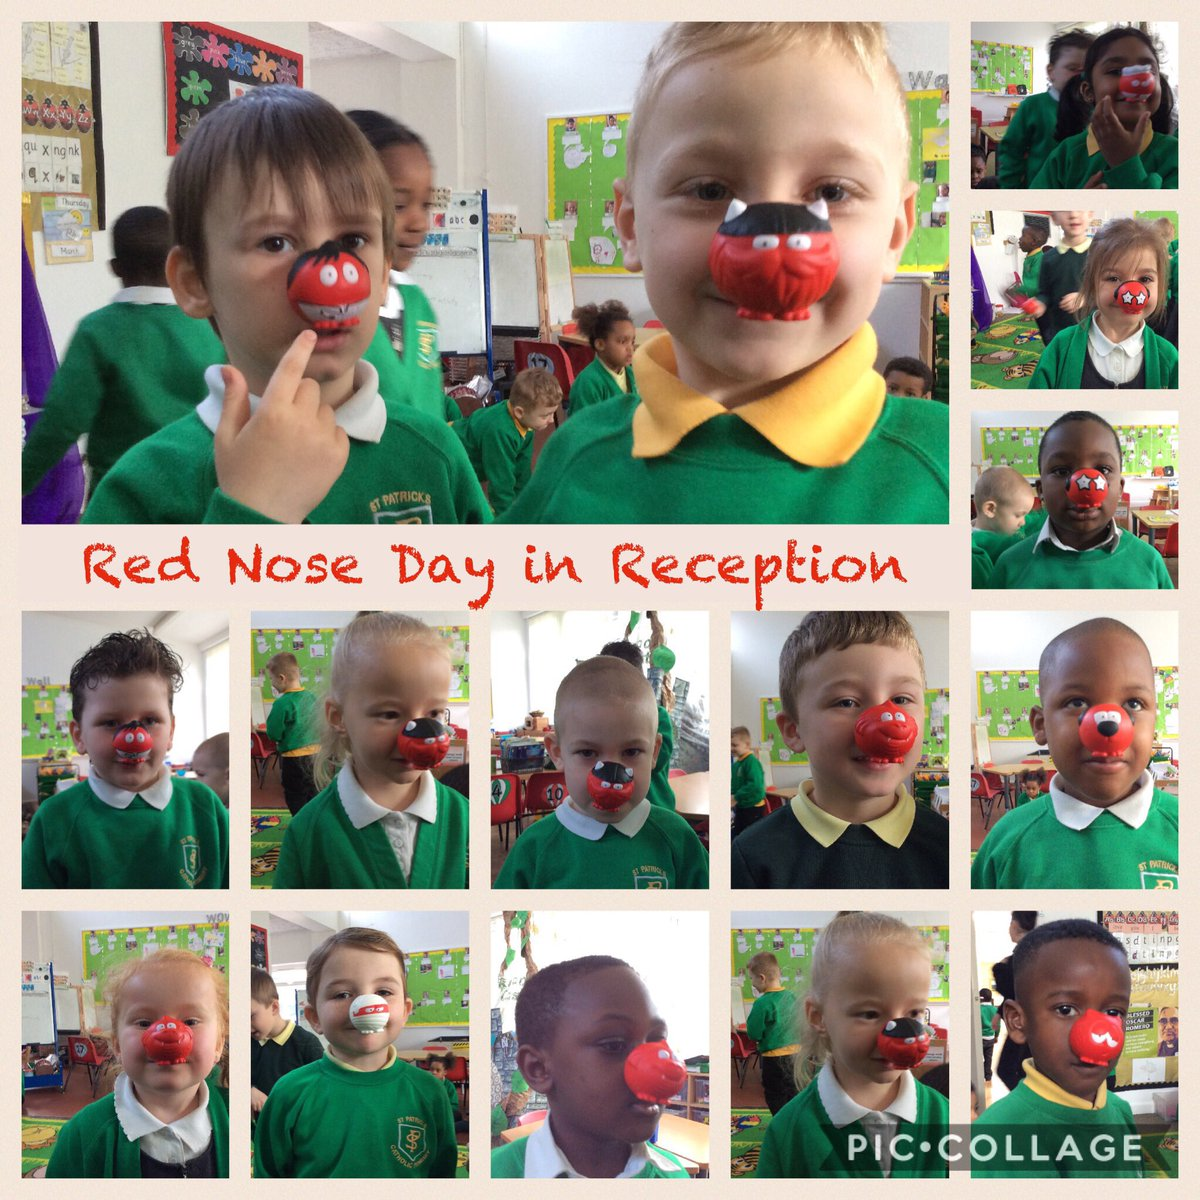 Thank you to all of the children and their families who supported @rednoseday @rednosedaysch by buying a Red Nose today! #RedNoseDay